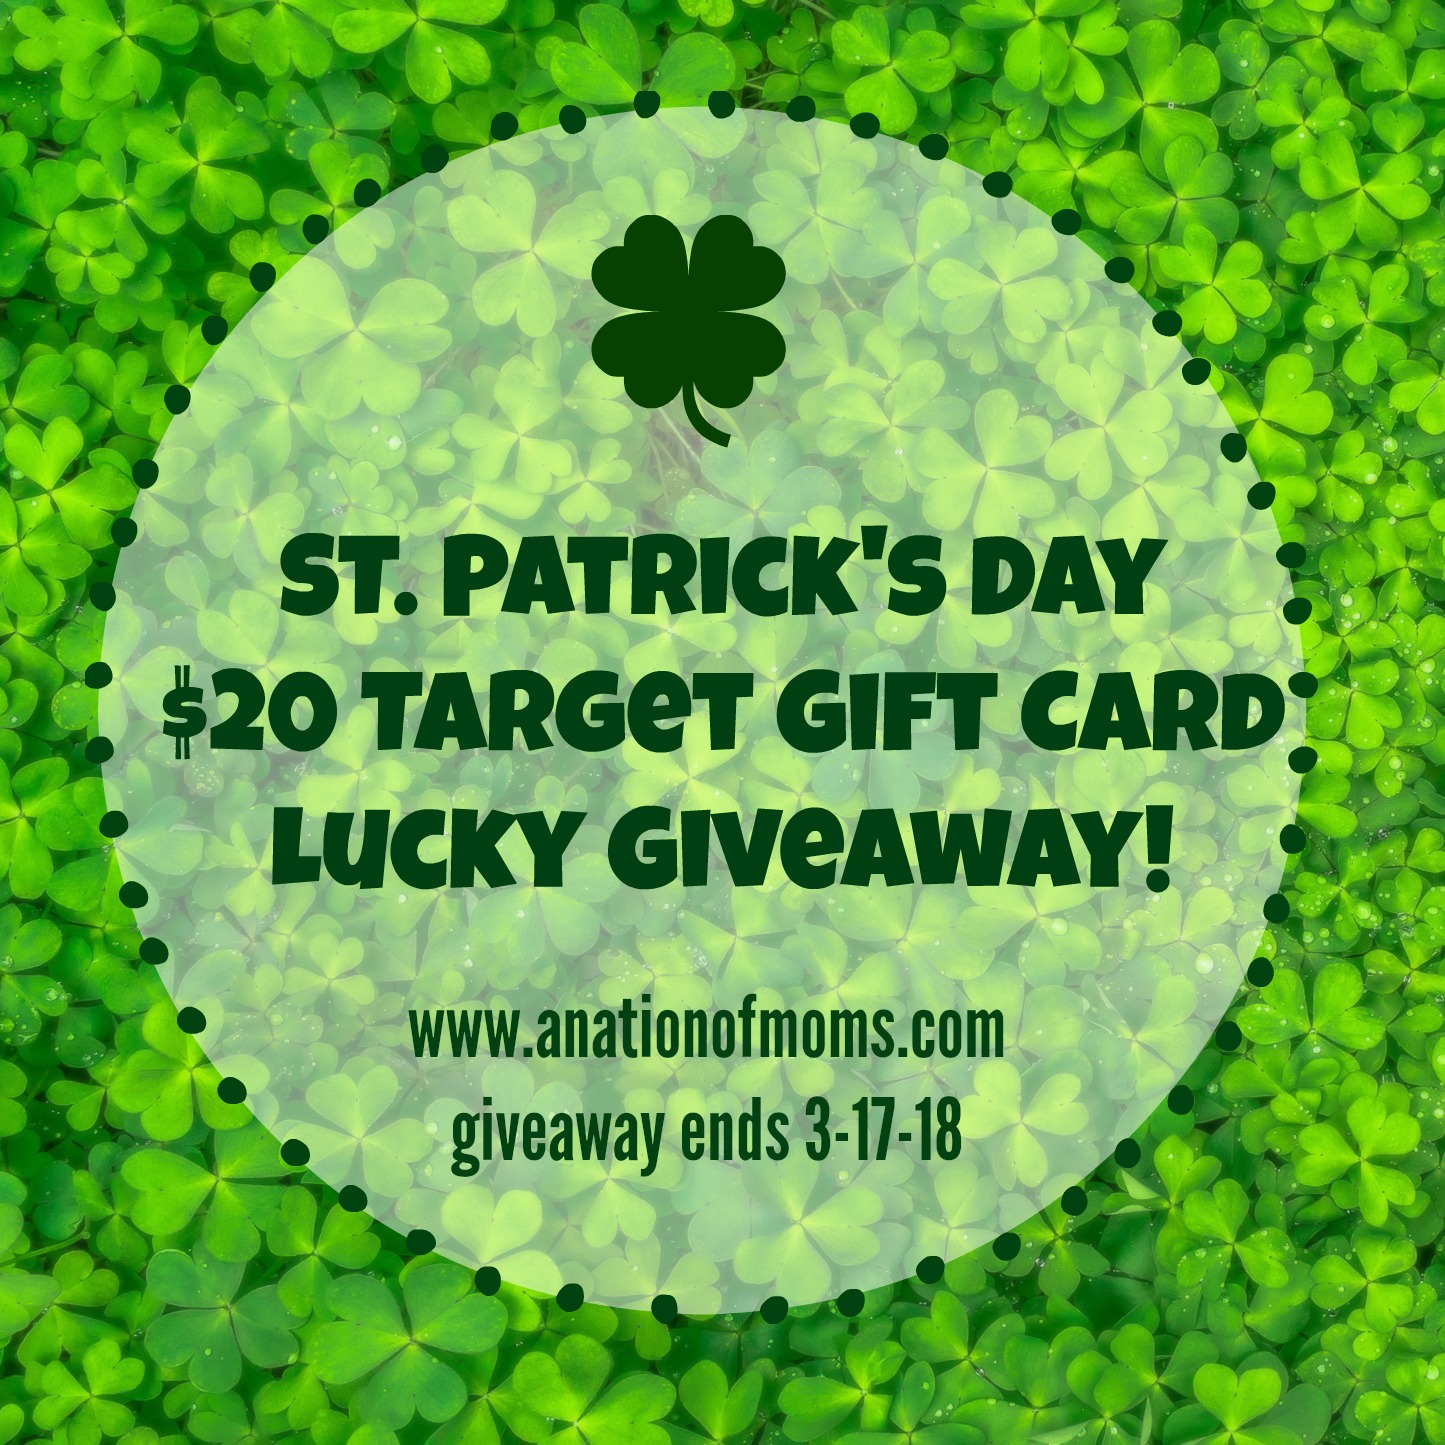 St Patrick's Day Giveaway